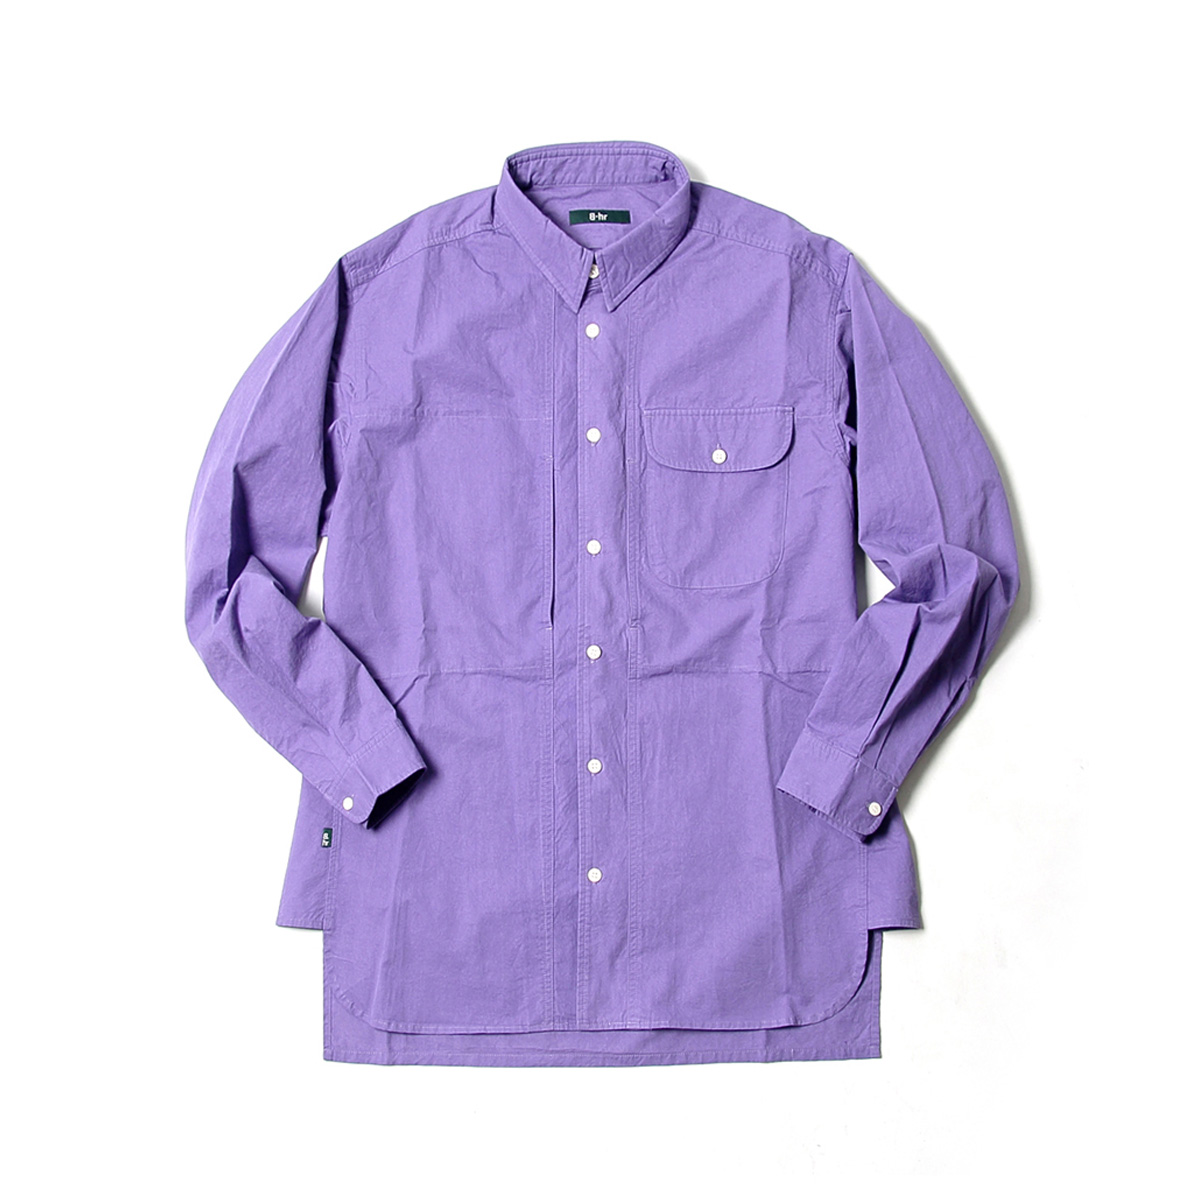 [BEHEAVYER] BHR HYPER SHIRTS 'PURPLE'